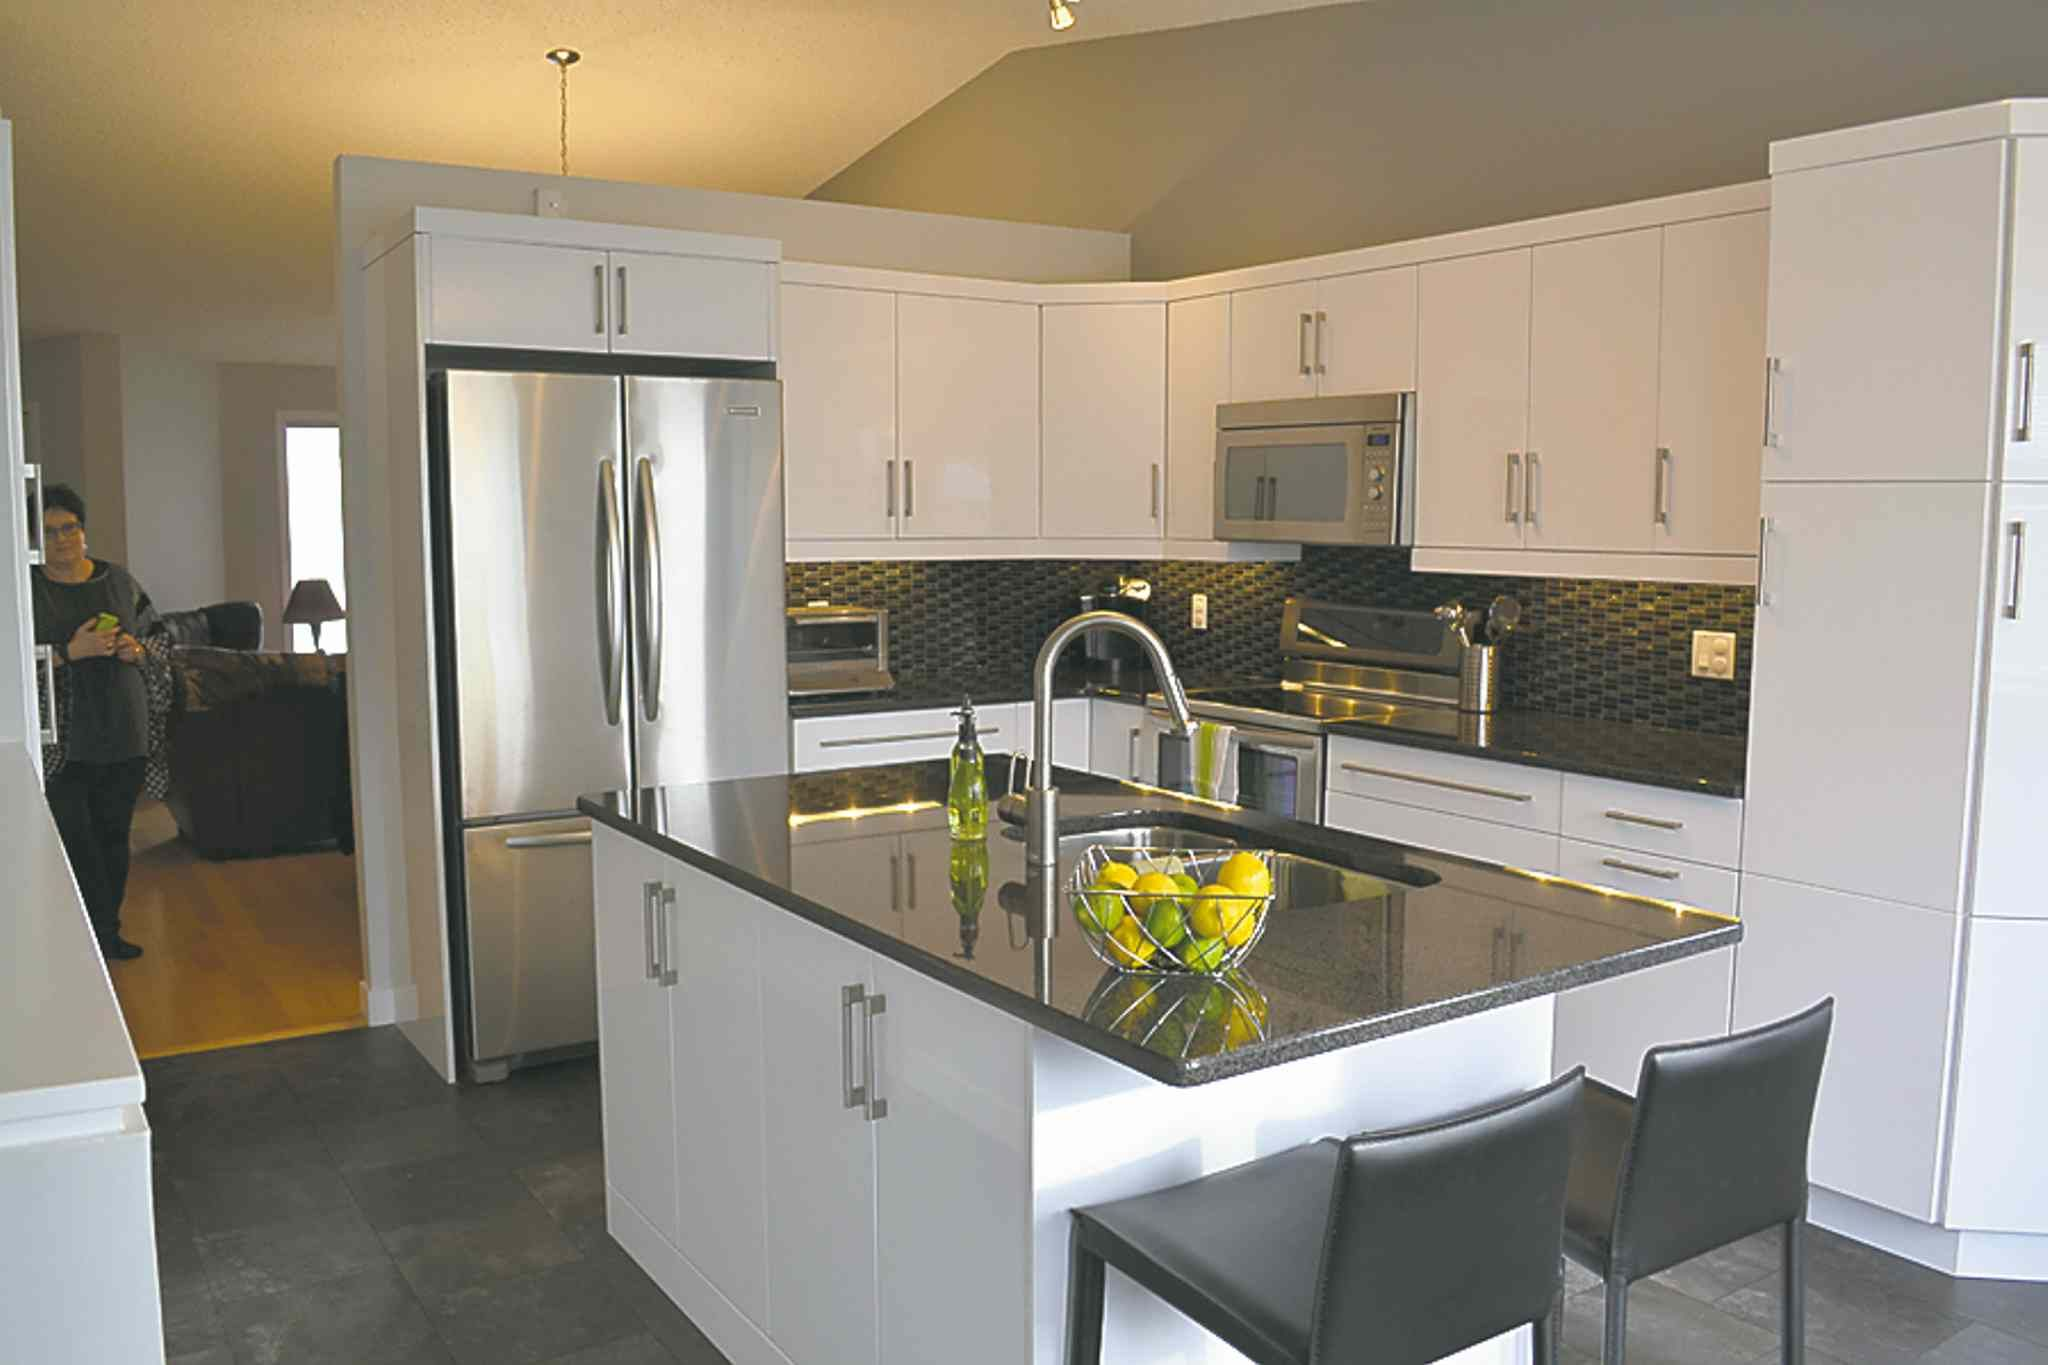 High gloss thermofoil cabinets google search kitchens for Thermofoil cabinets